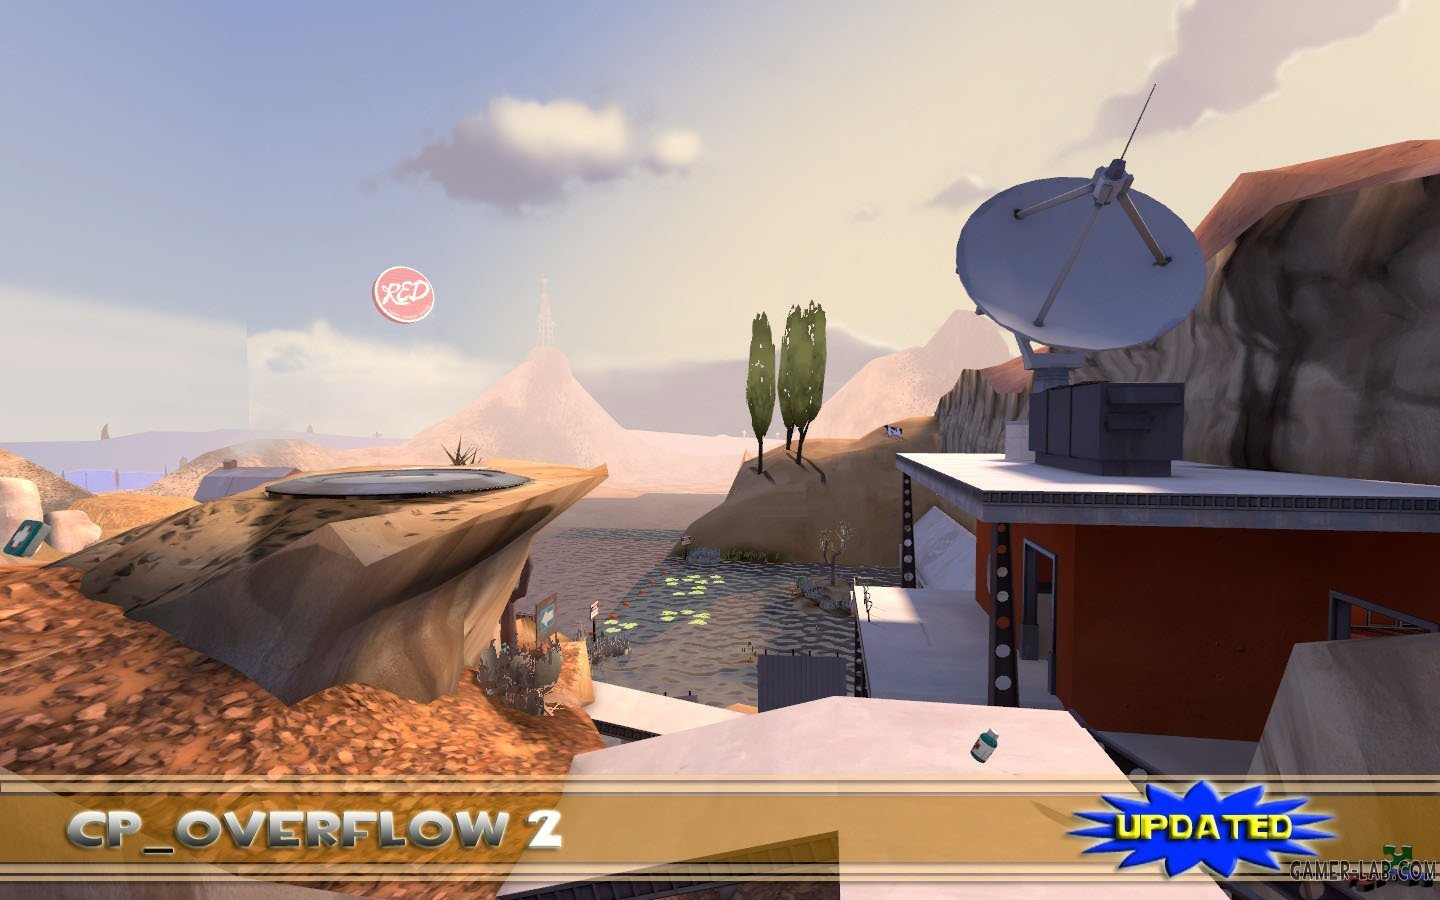 cp_overflow_2